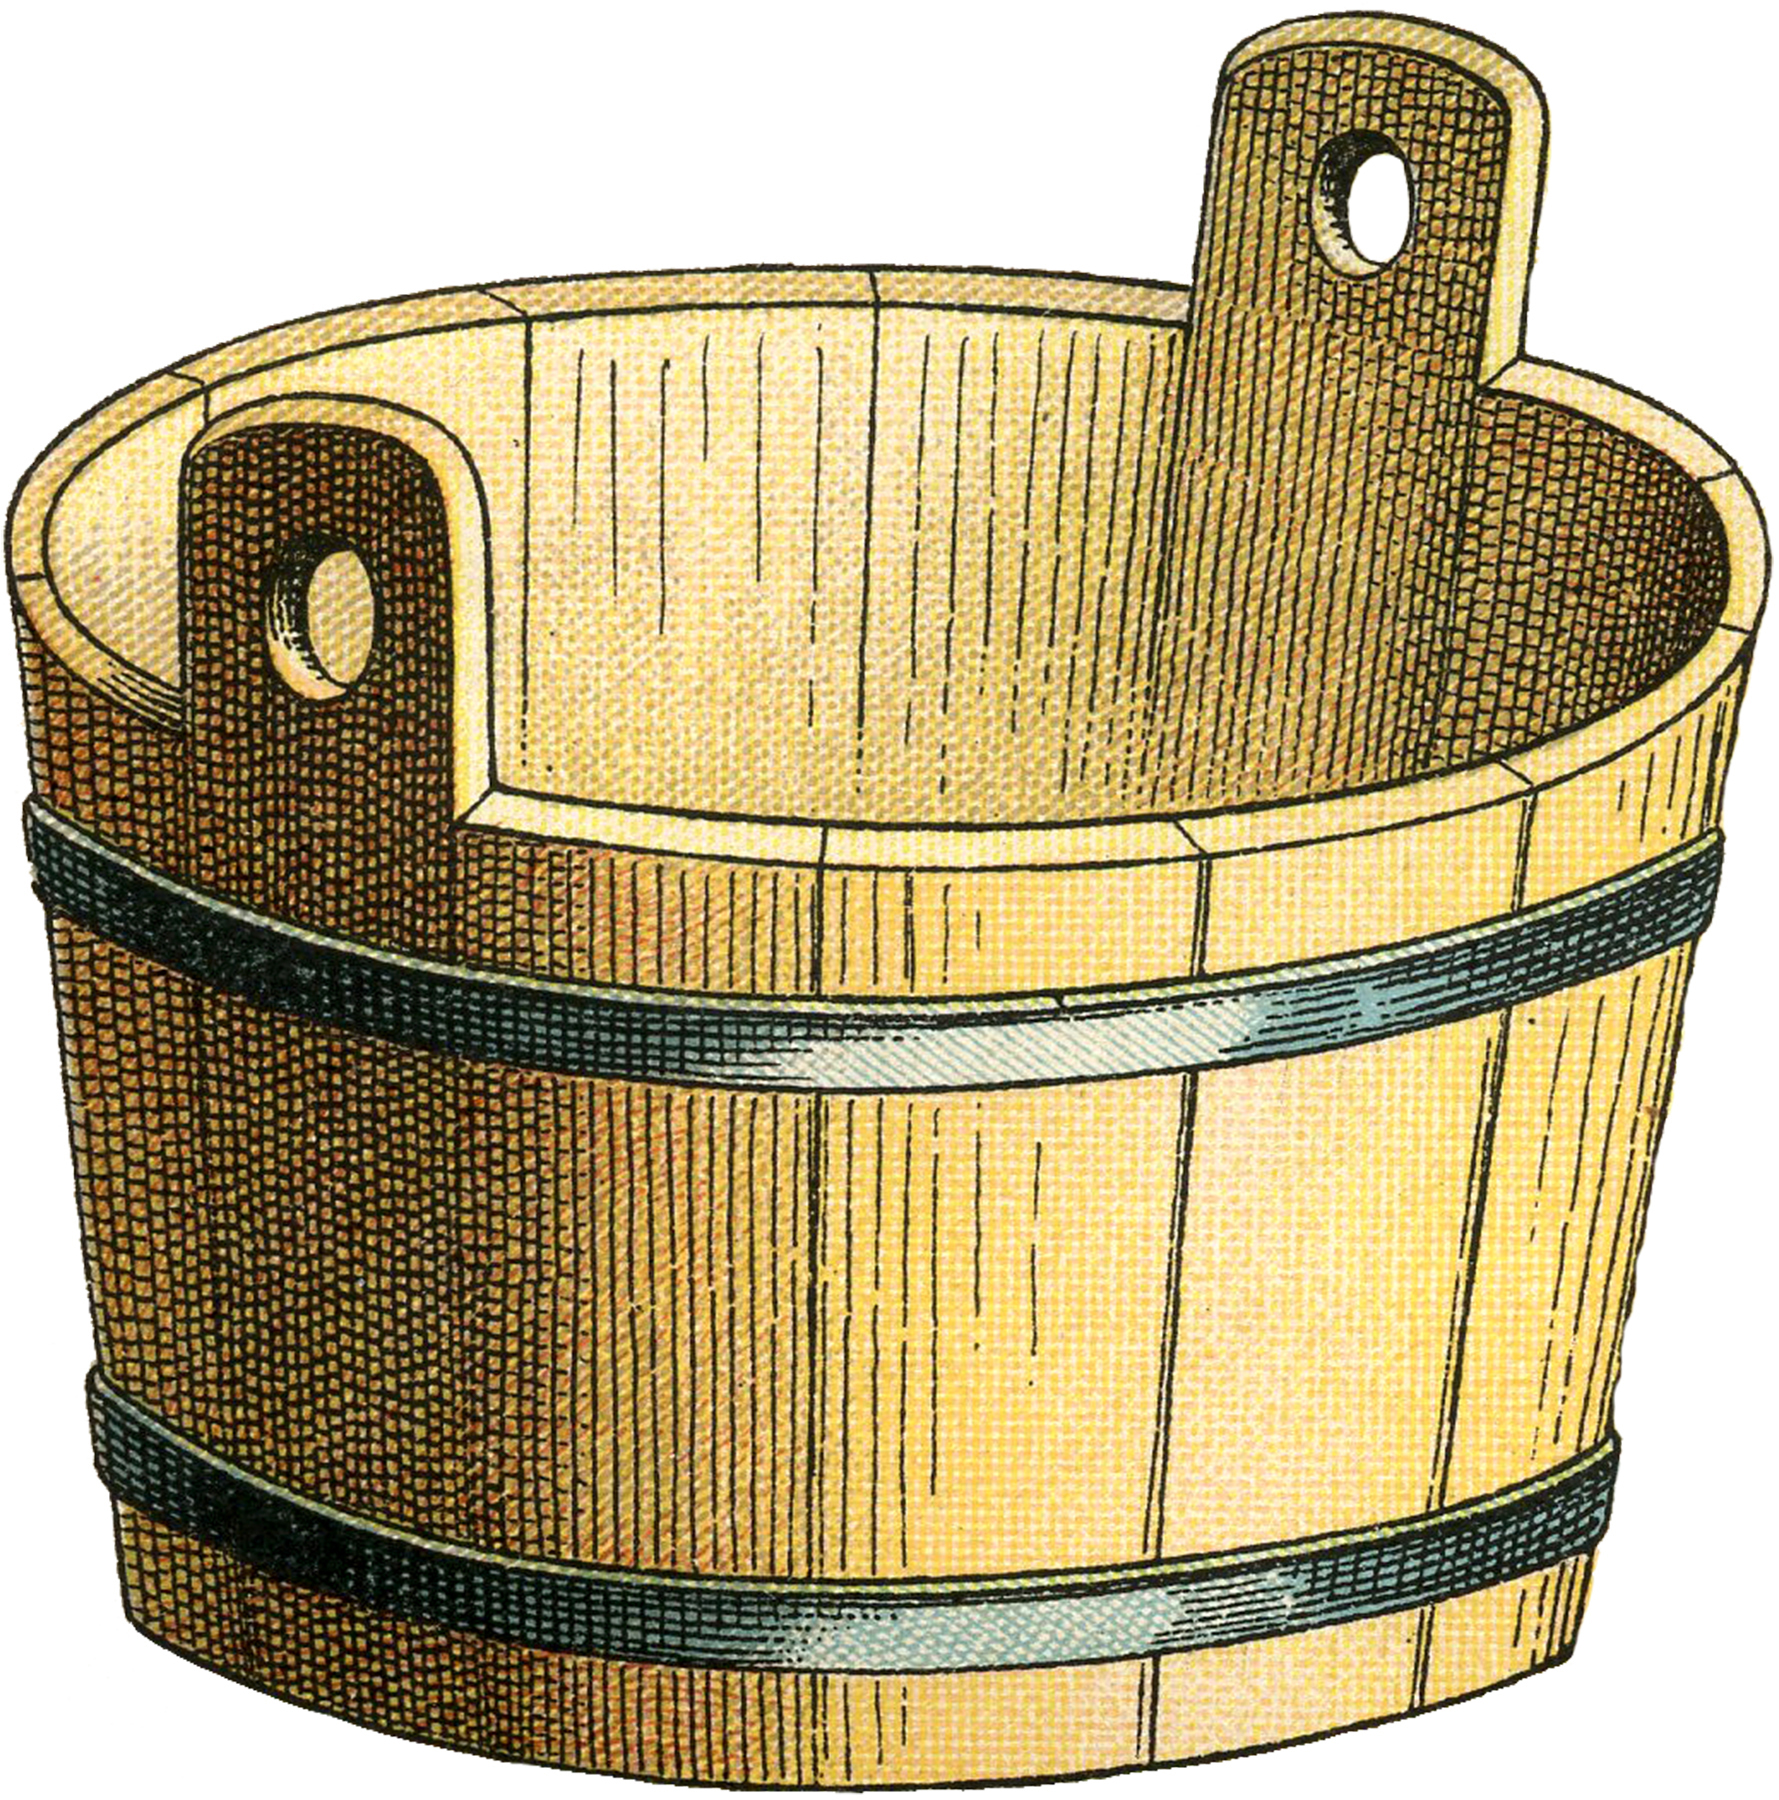 Old Wooden Bucket Image  The Graphics Fairy